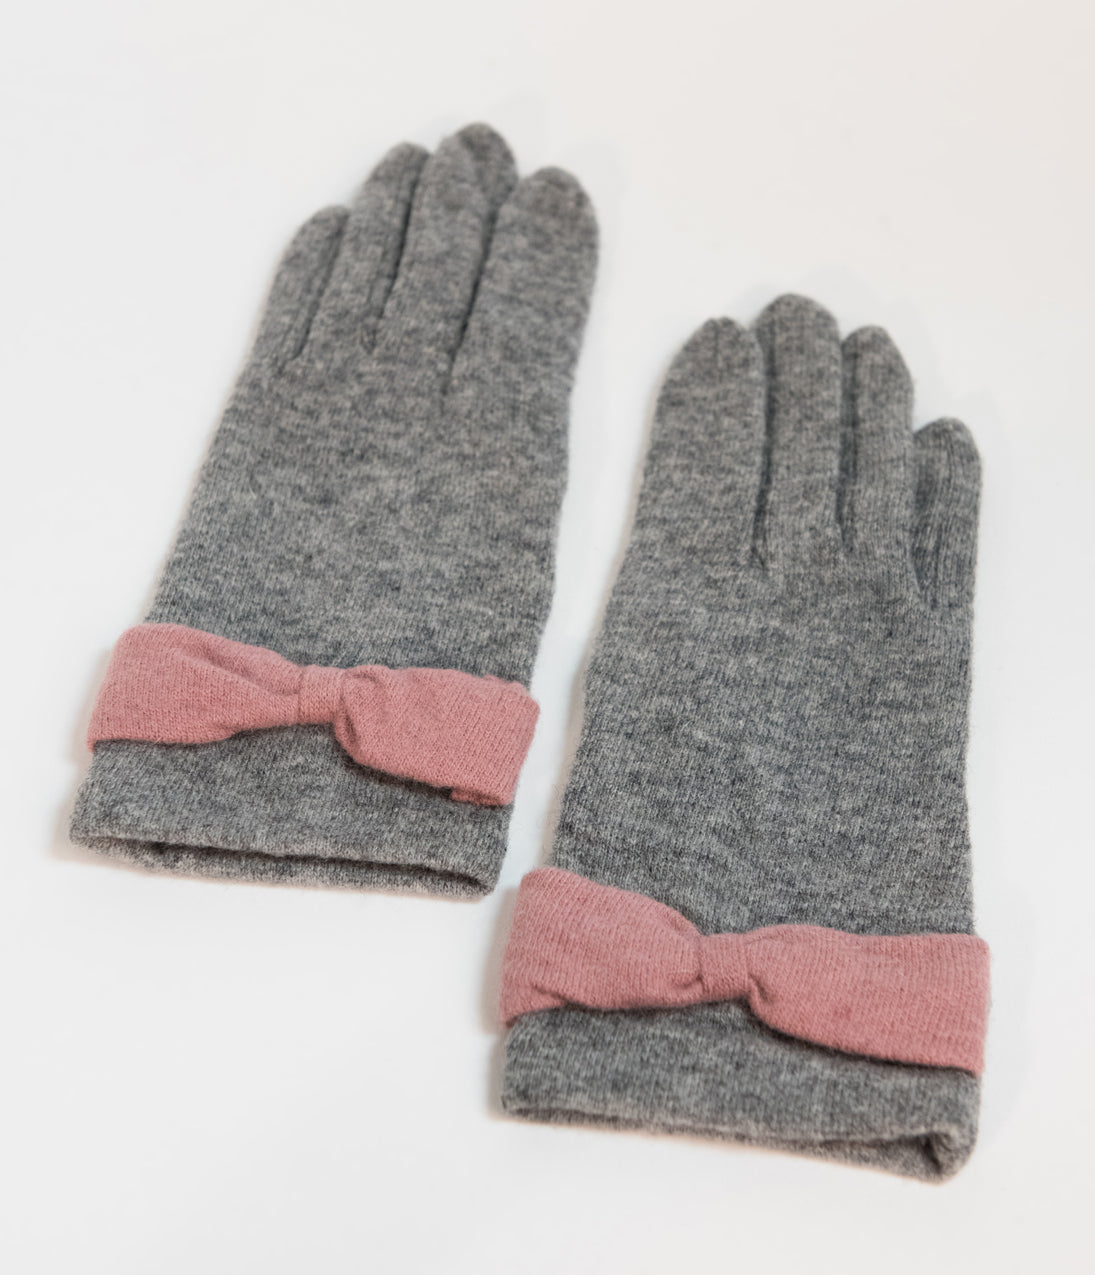 Vintage Style Gloves- Long, Wrist, Evening, Day, Leather, Lace Unique Vintage Grey Wool  Pink Bow Wrist Gloves $20.00 AT vintagedancer.com